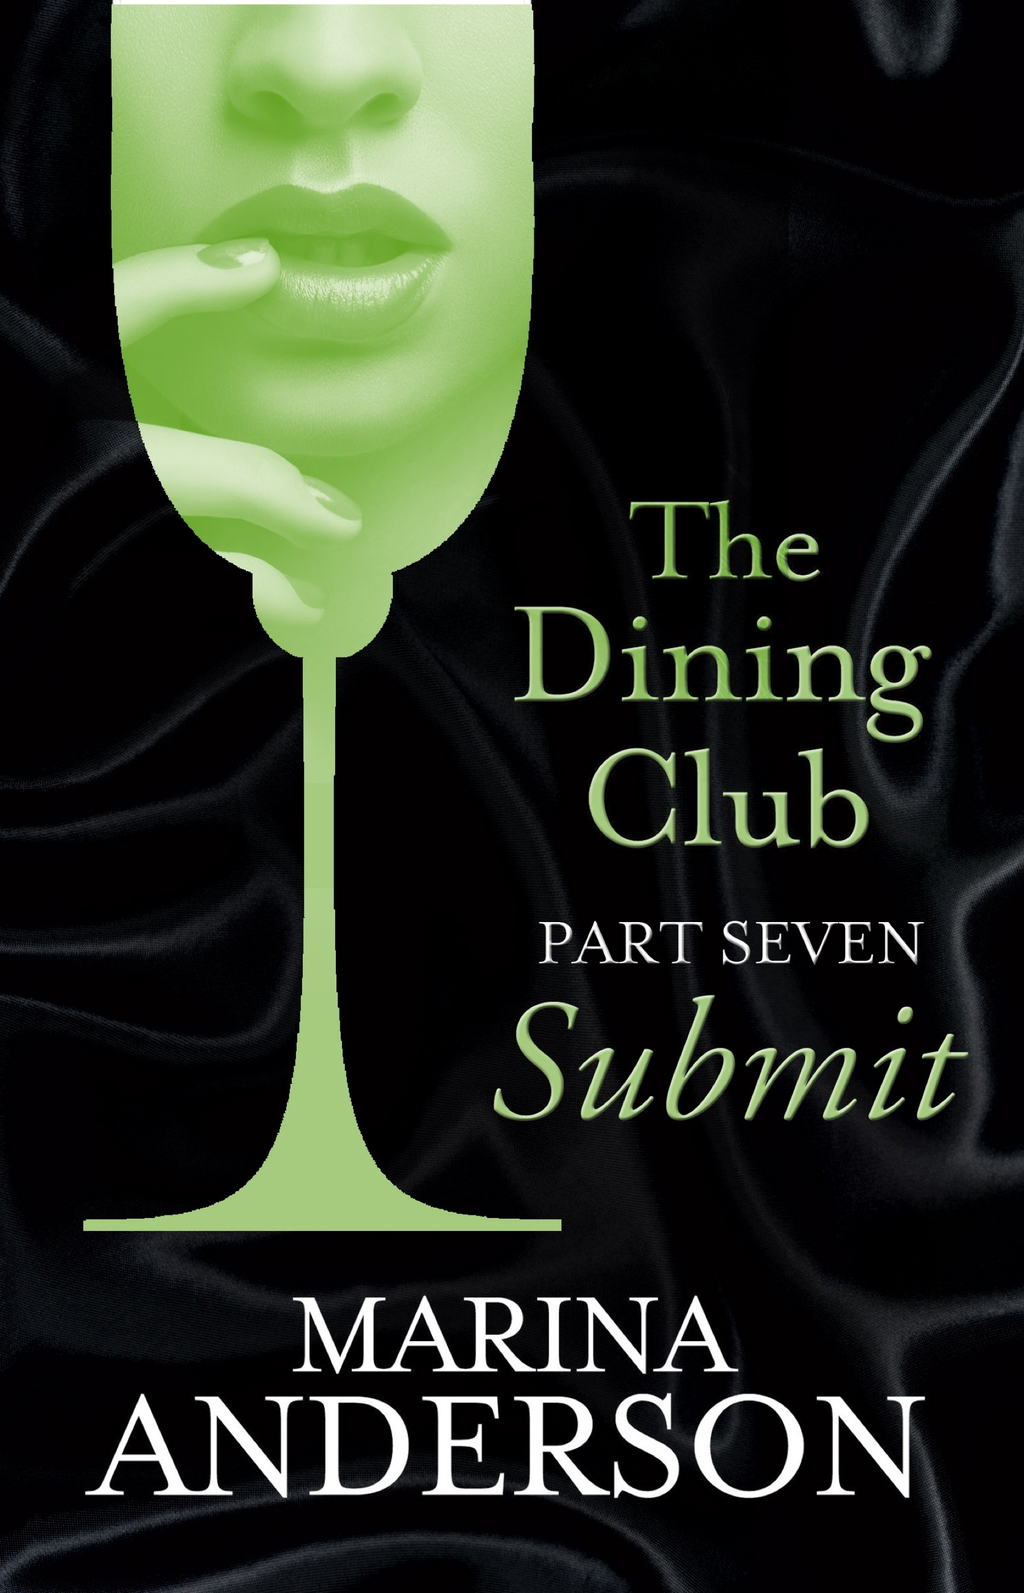 The Dining Club: Part 7